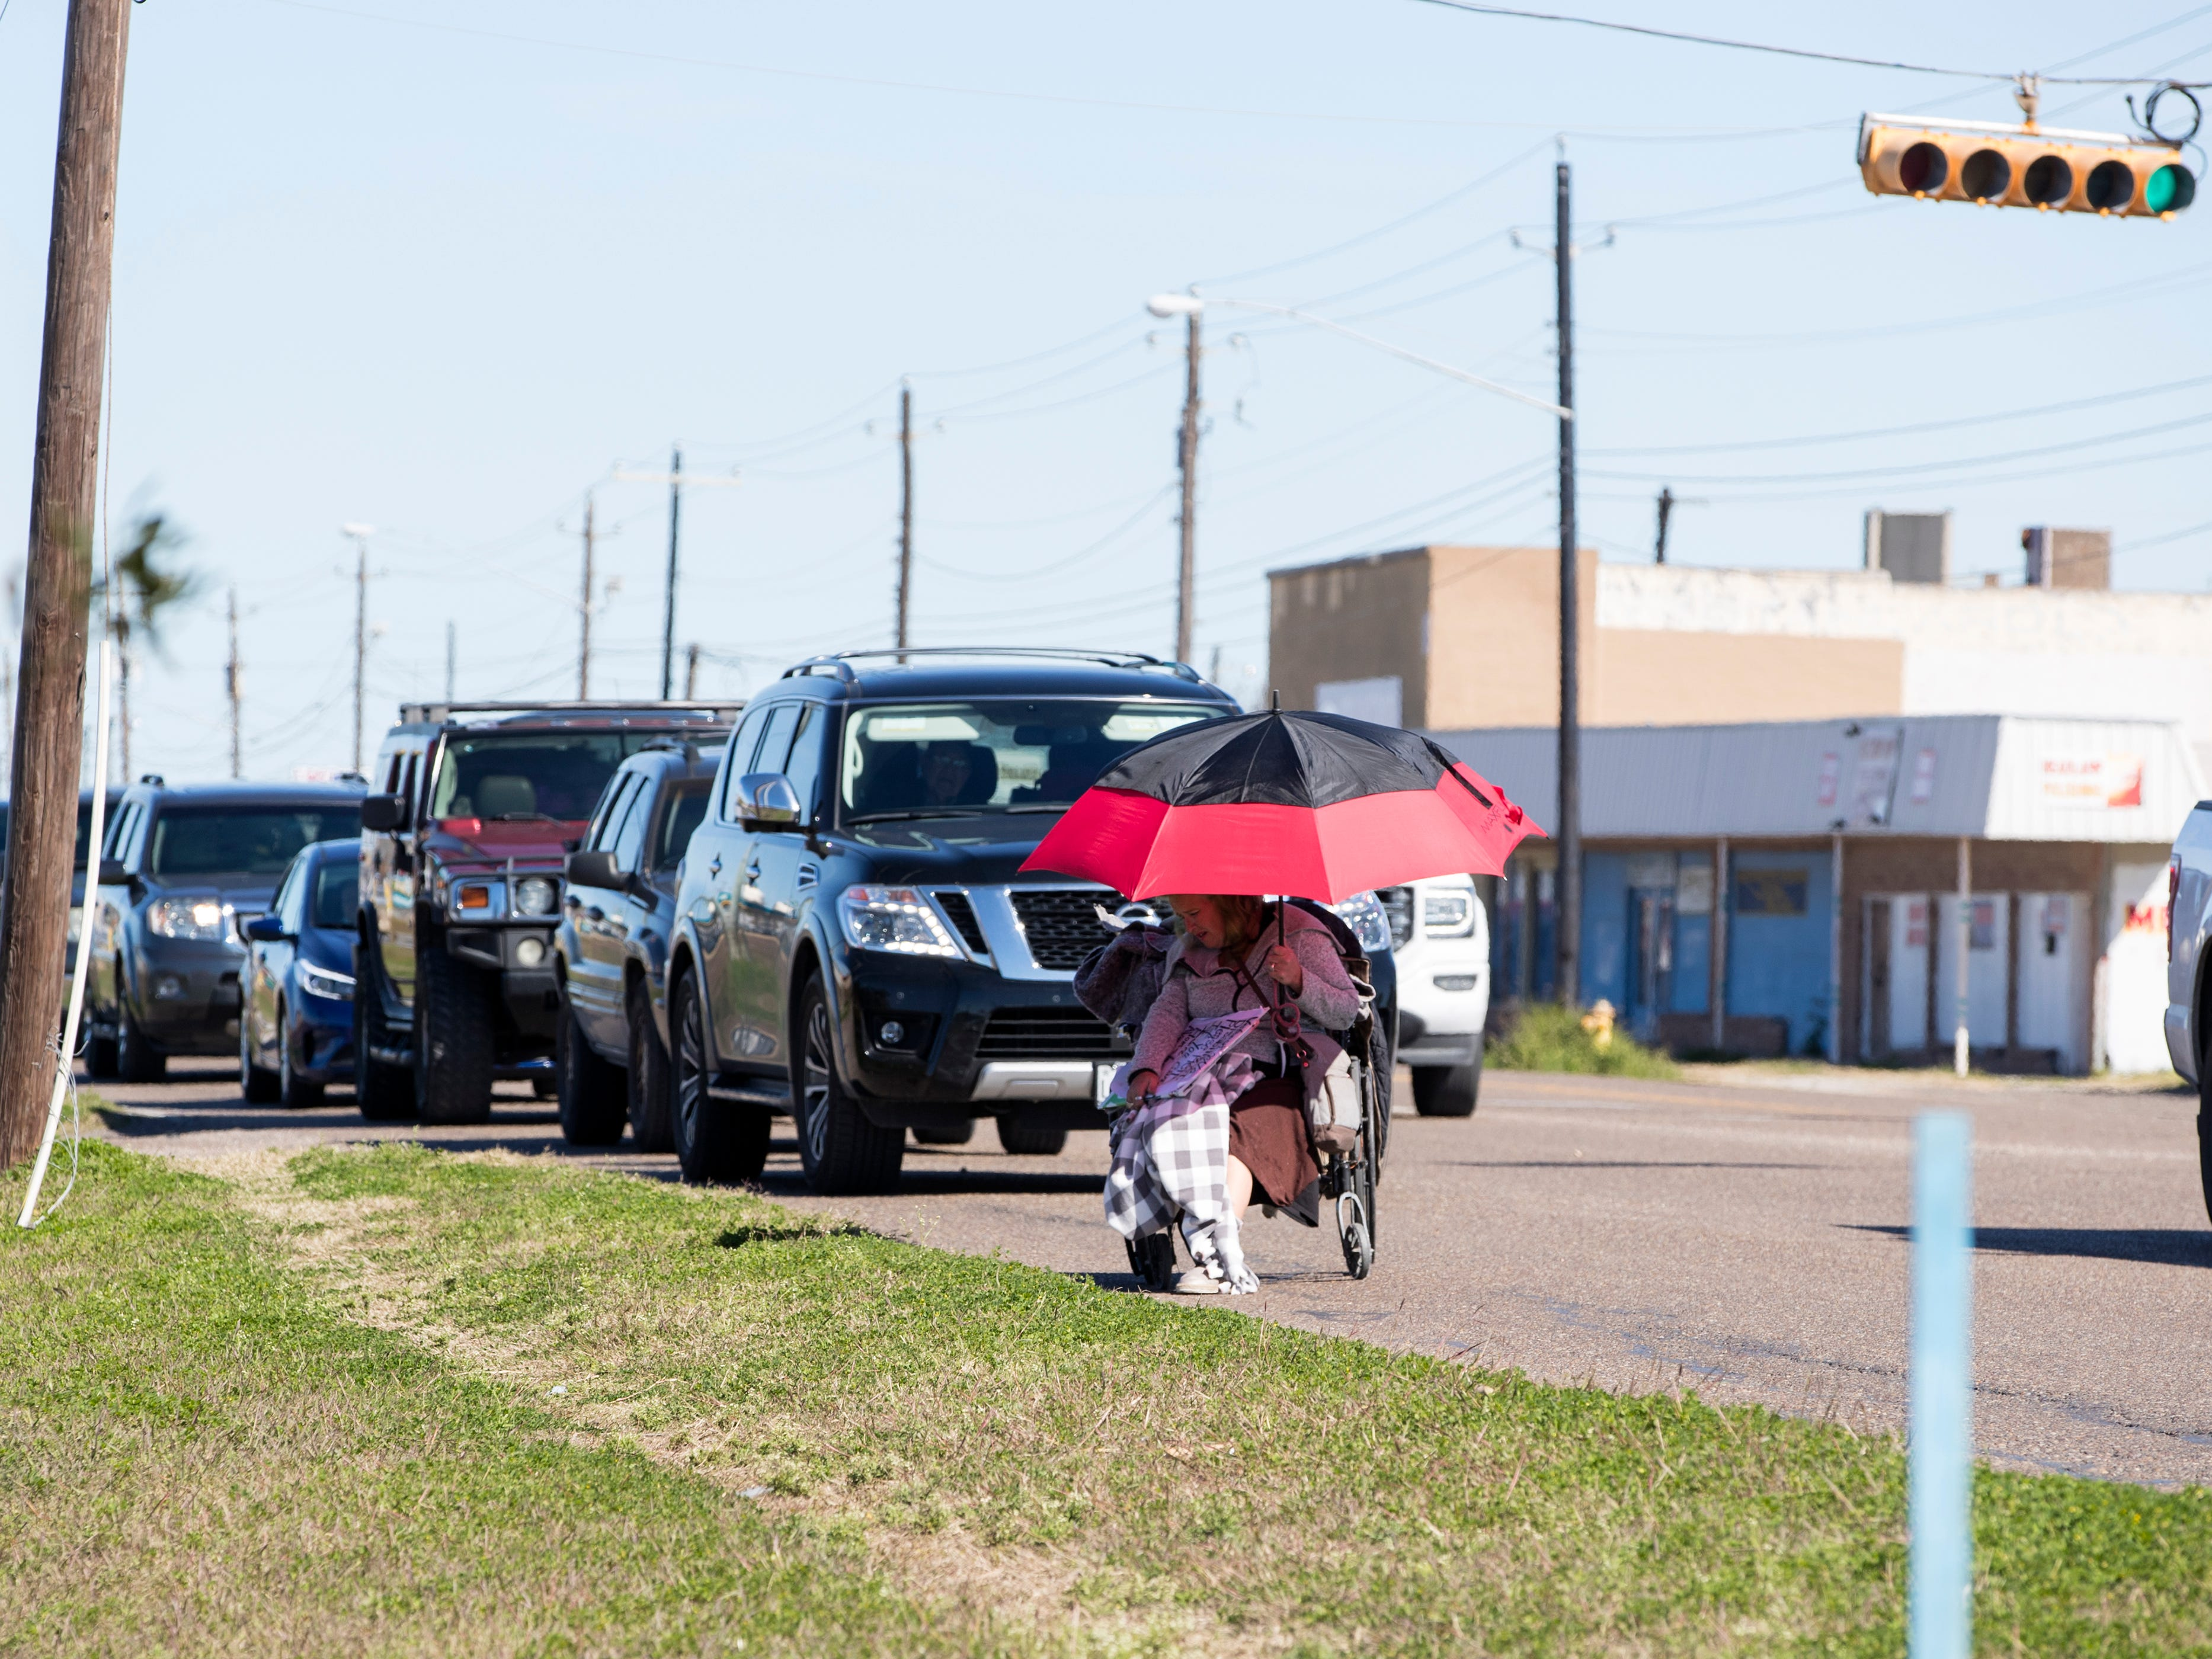 A woman in a wheelchair travels in the 4900 block of Ayers Street on Tuesday, Jan. 29, 2019. Statistics from the Corpus Christi Police Department show that a high number of auto-pedestrian accidents take place between the blocks of 4100 and 4900 Ayers Street.